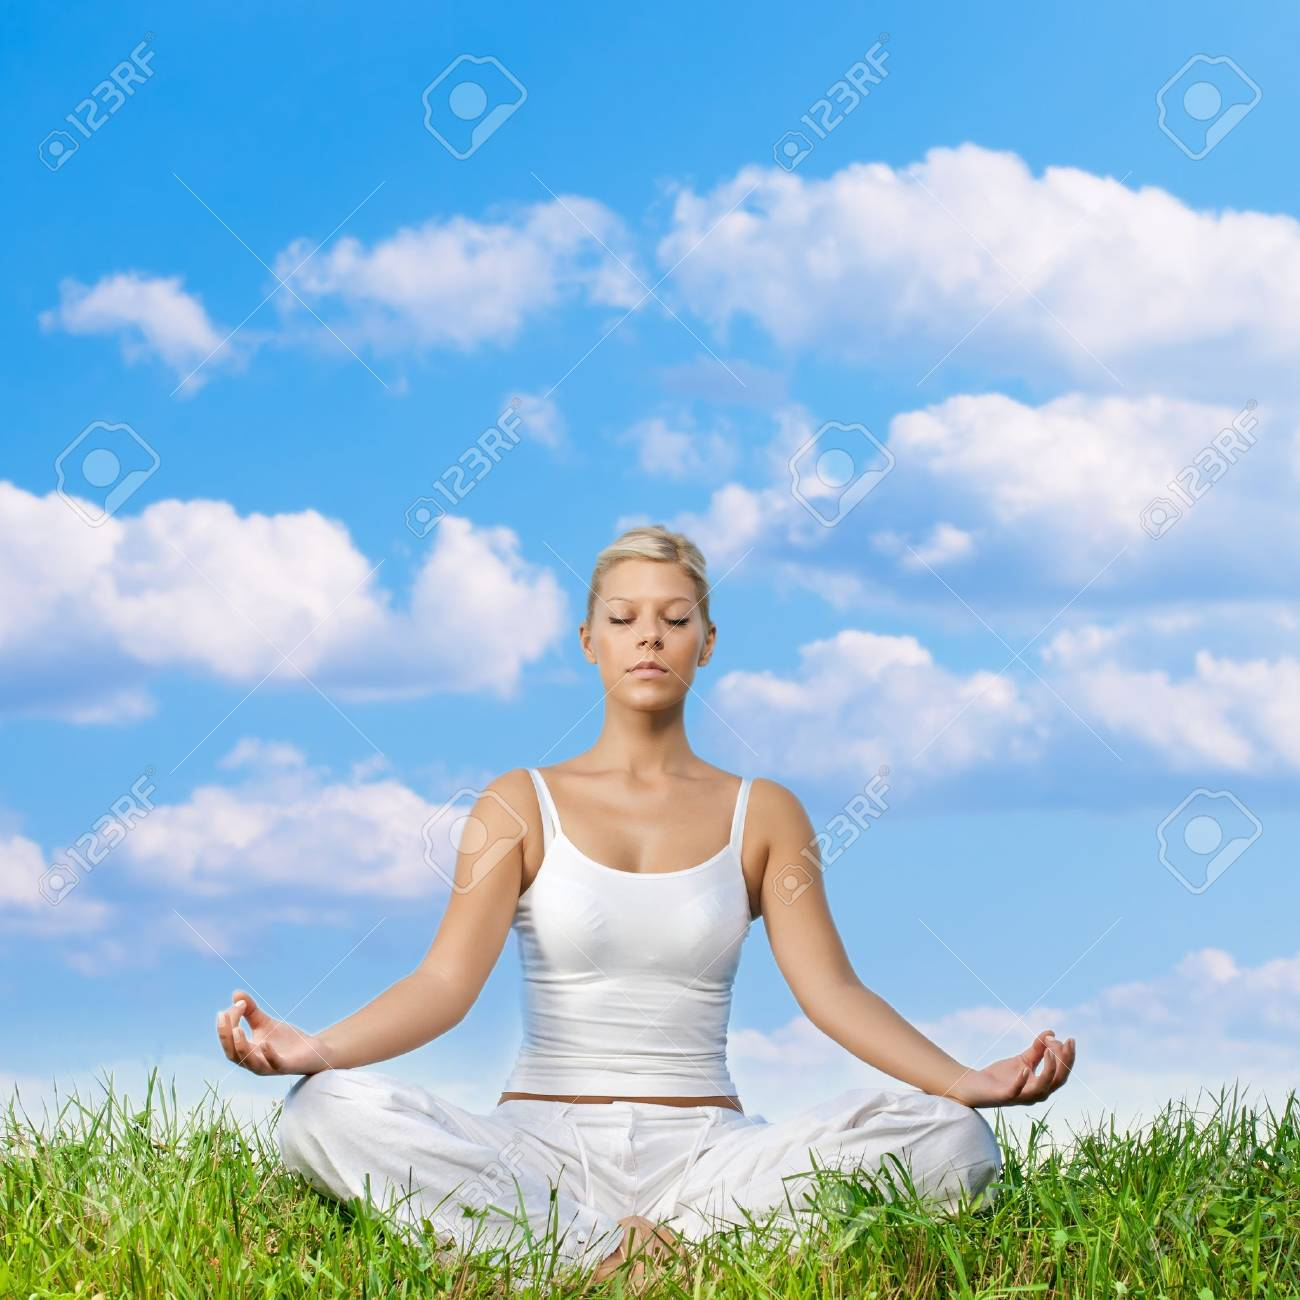 Young woman meditating on green grass with copyspace. Stock Photo - 10411280